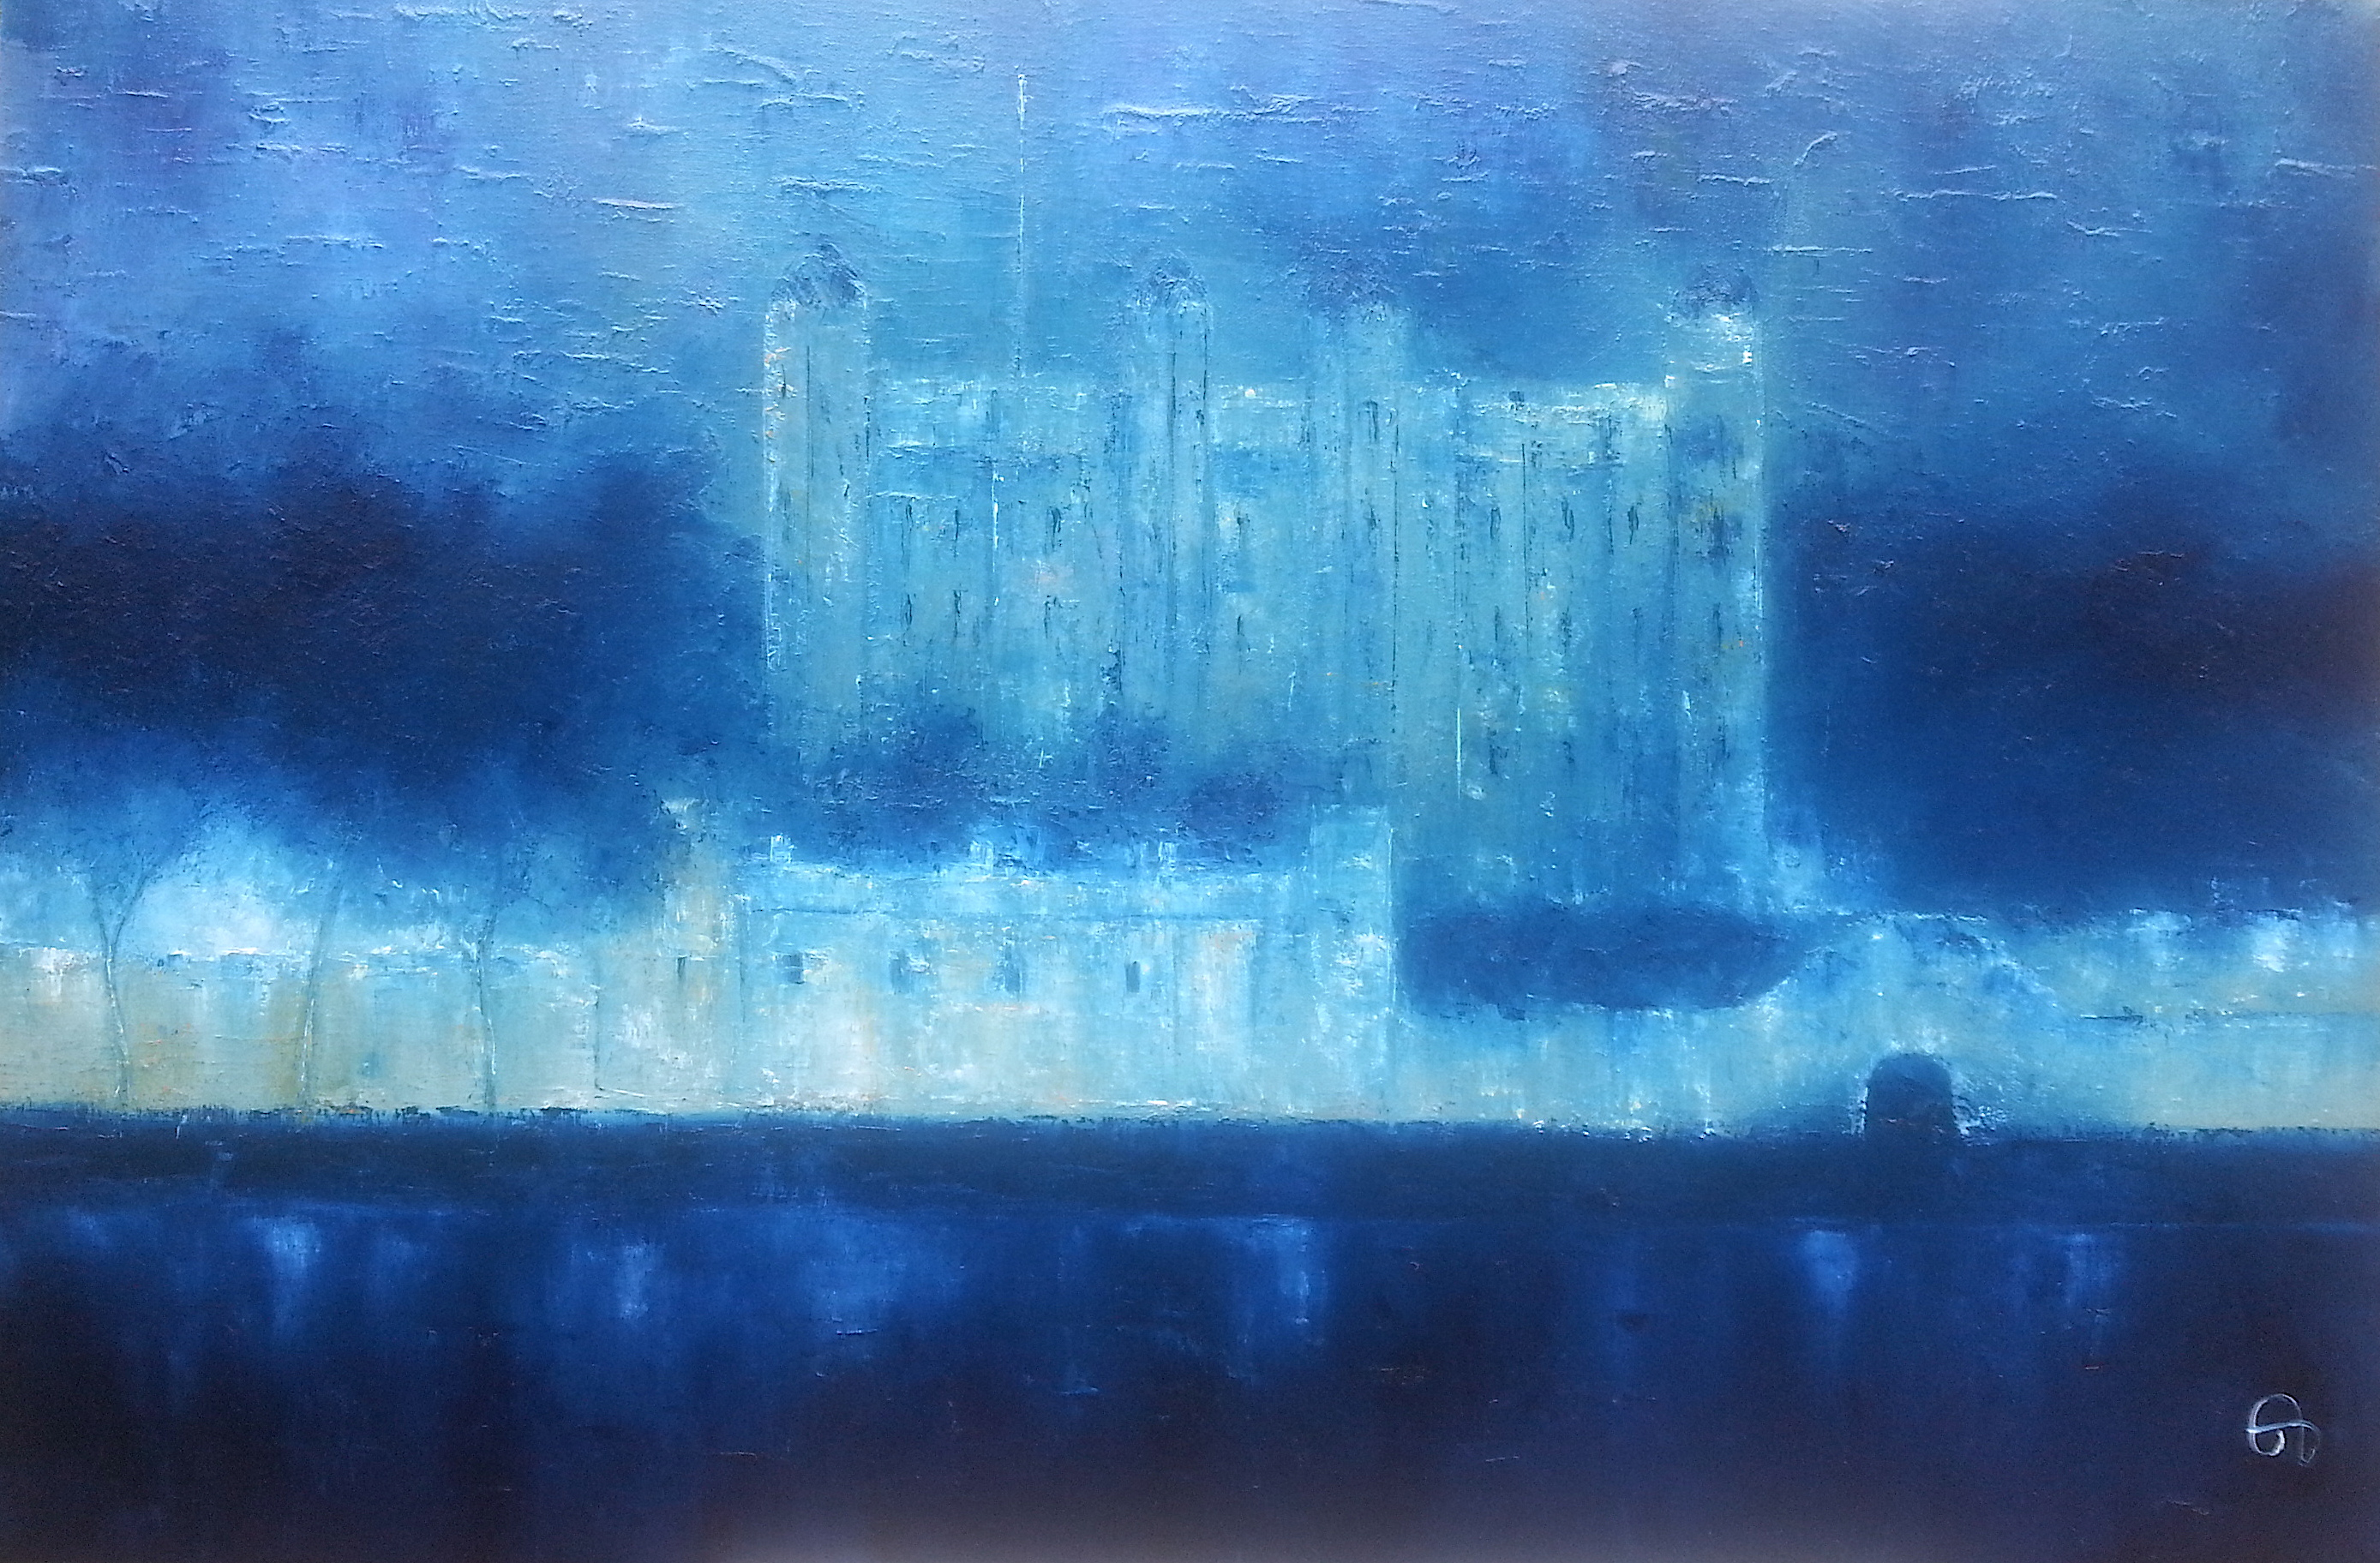 Tower of London in Blue/ SOLD